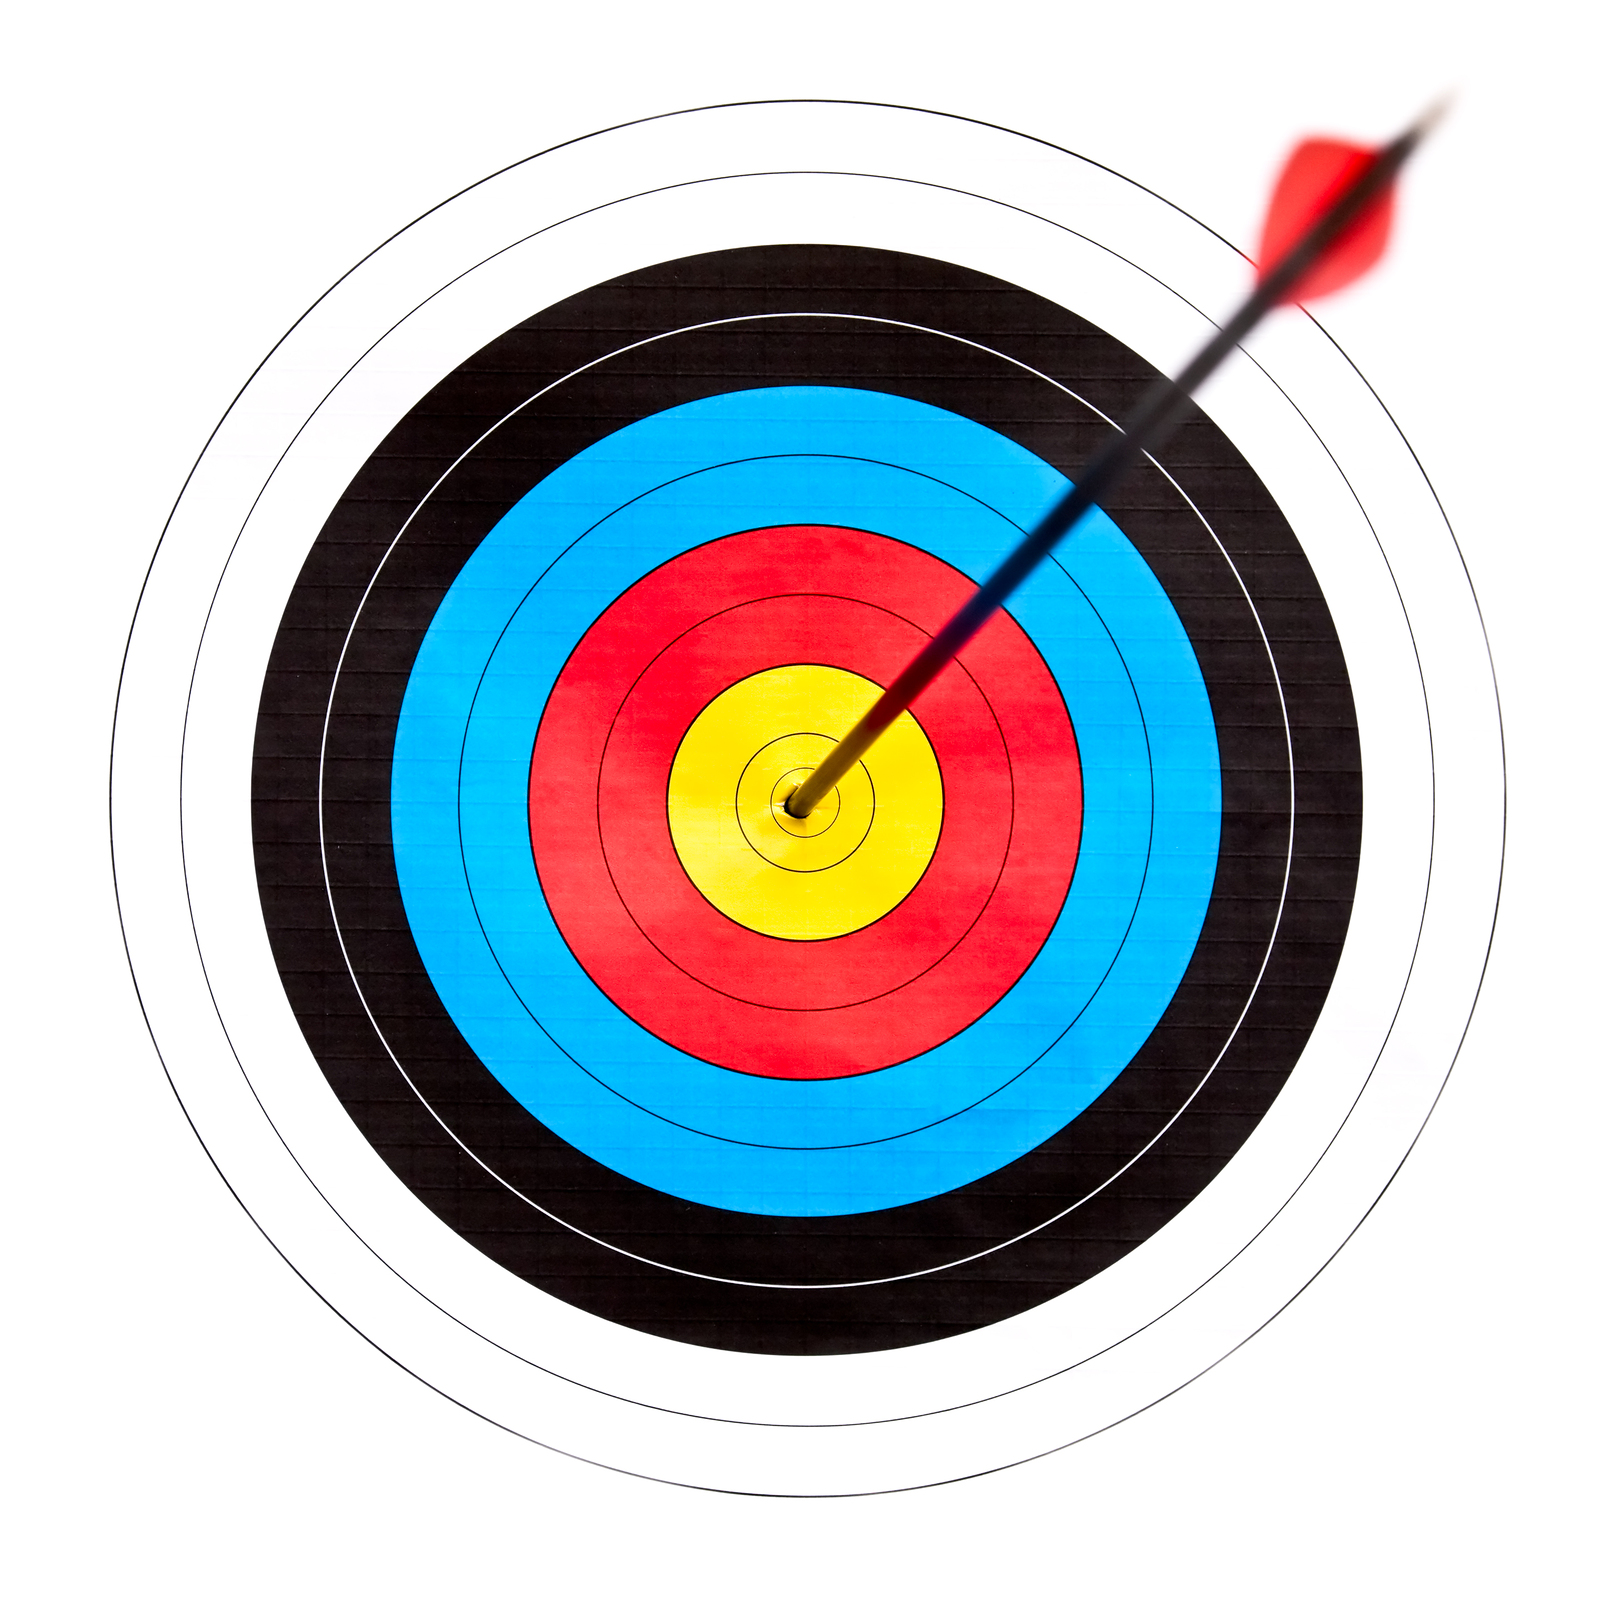 clip art arrow target - photo #15